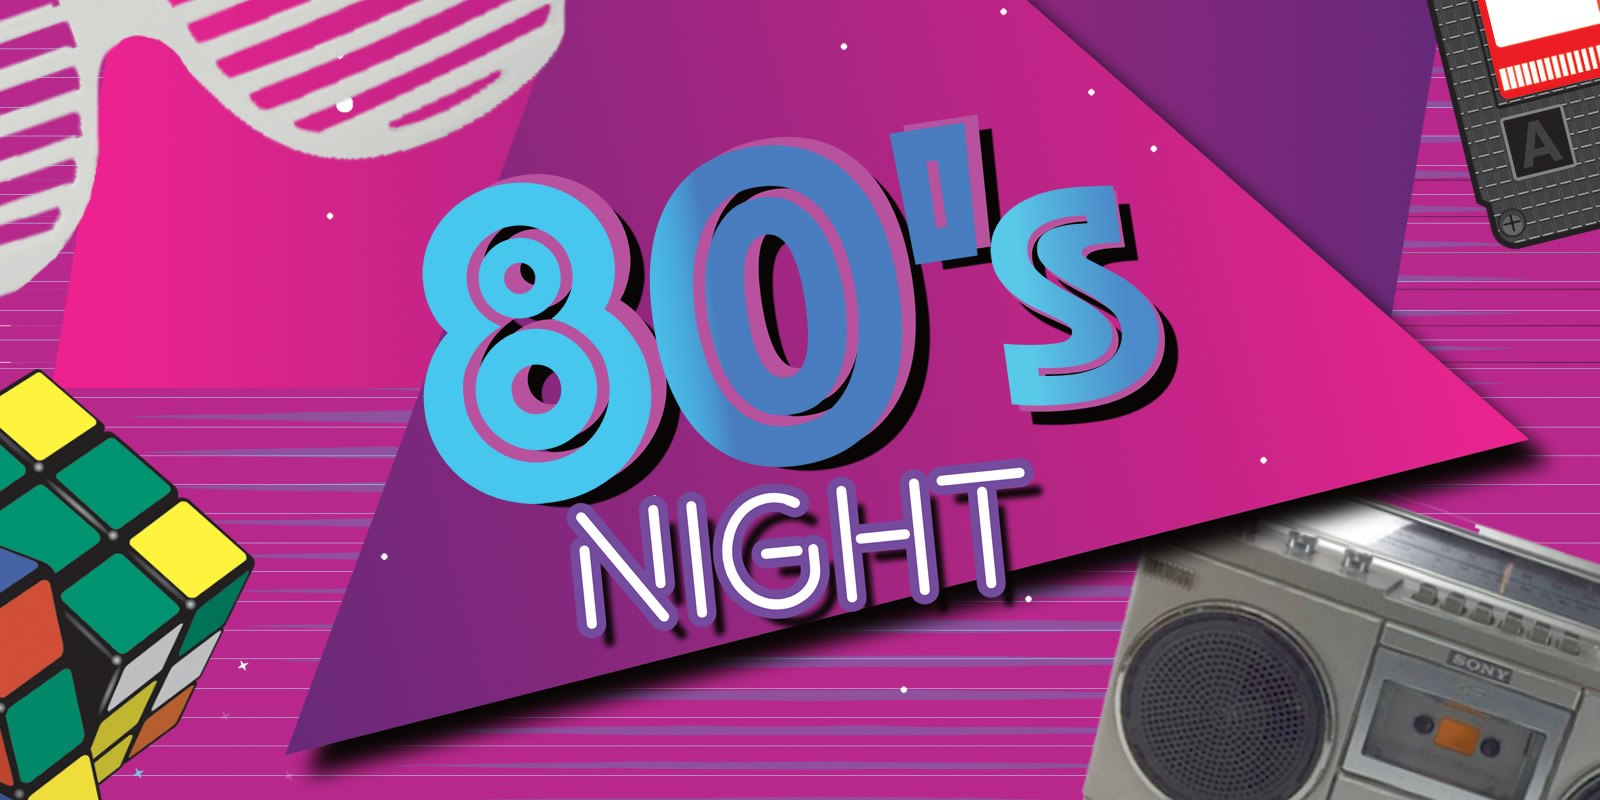 80 s night local event discover central massachusetts